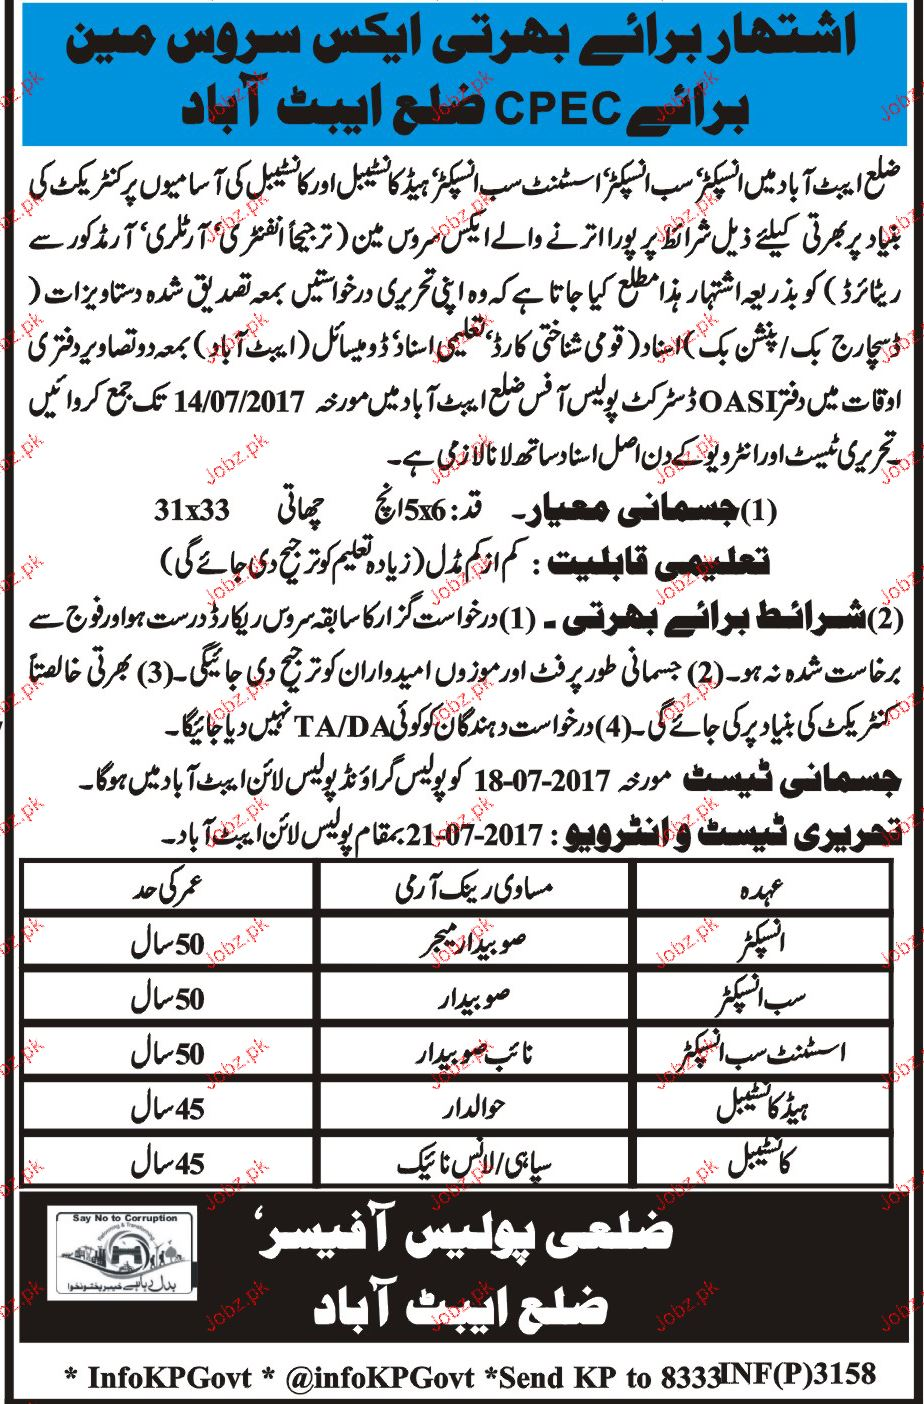 Recruitment of Police Constable in KPK Police